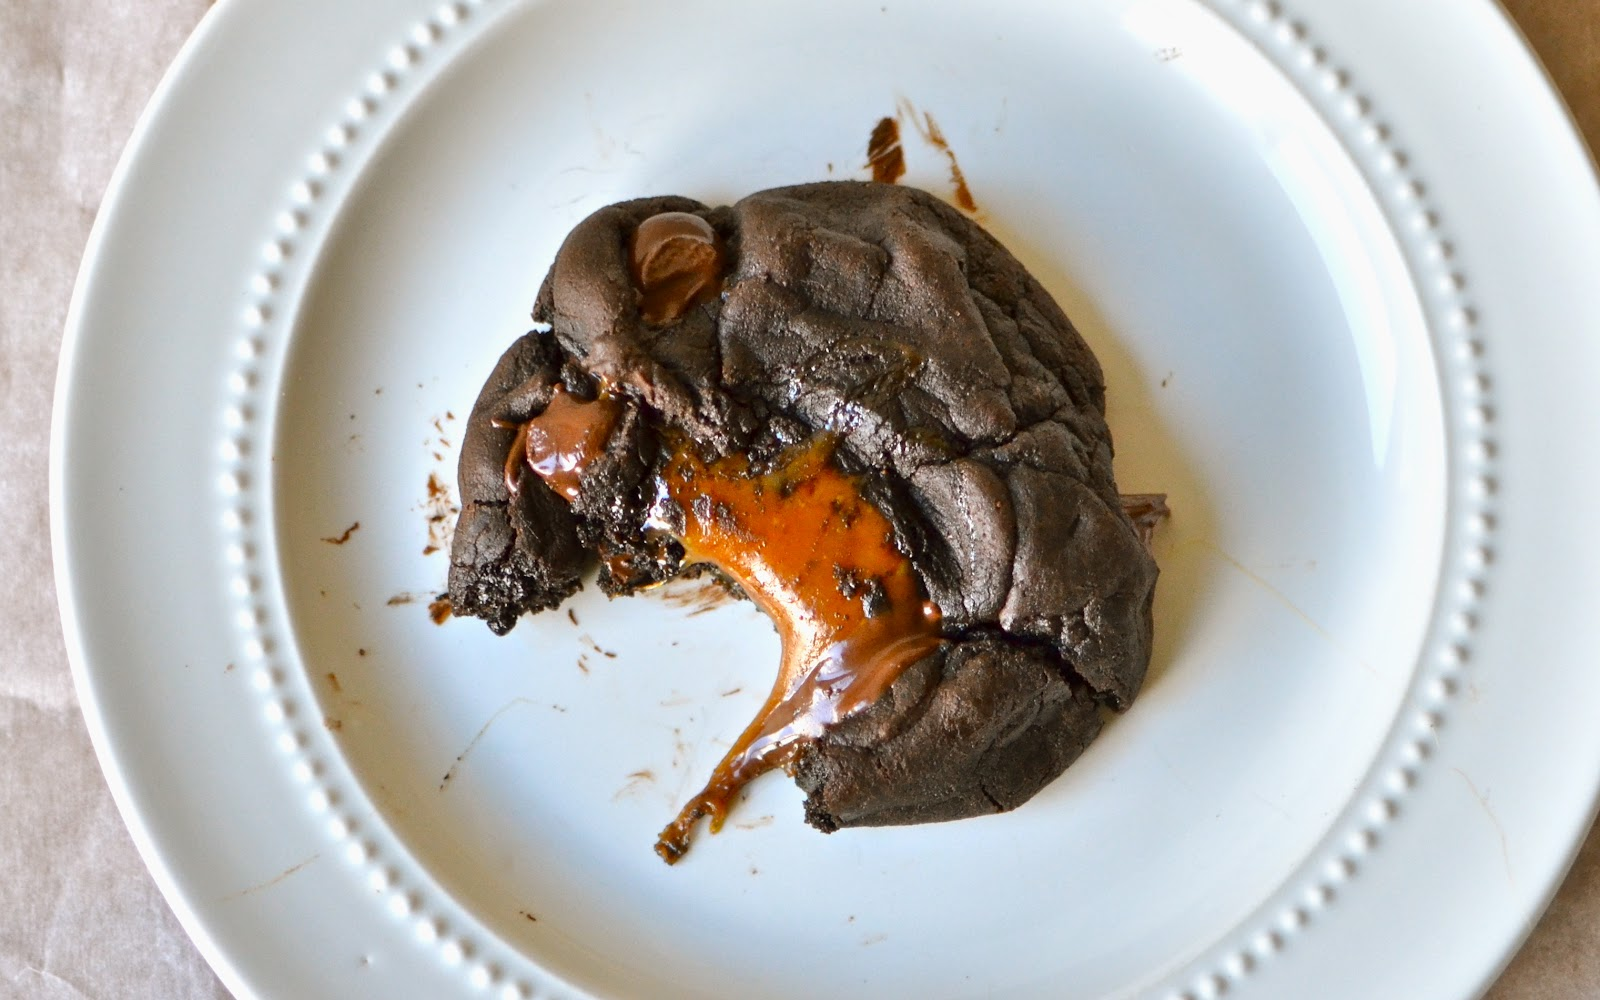 ... chunks of chocolate. Look at those gooey, buttery, swirls of caramel